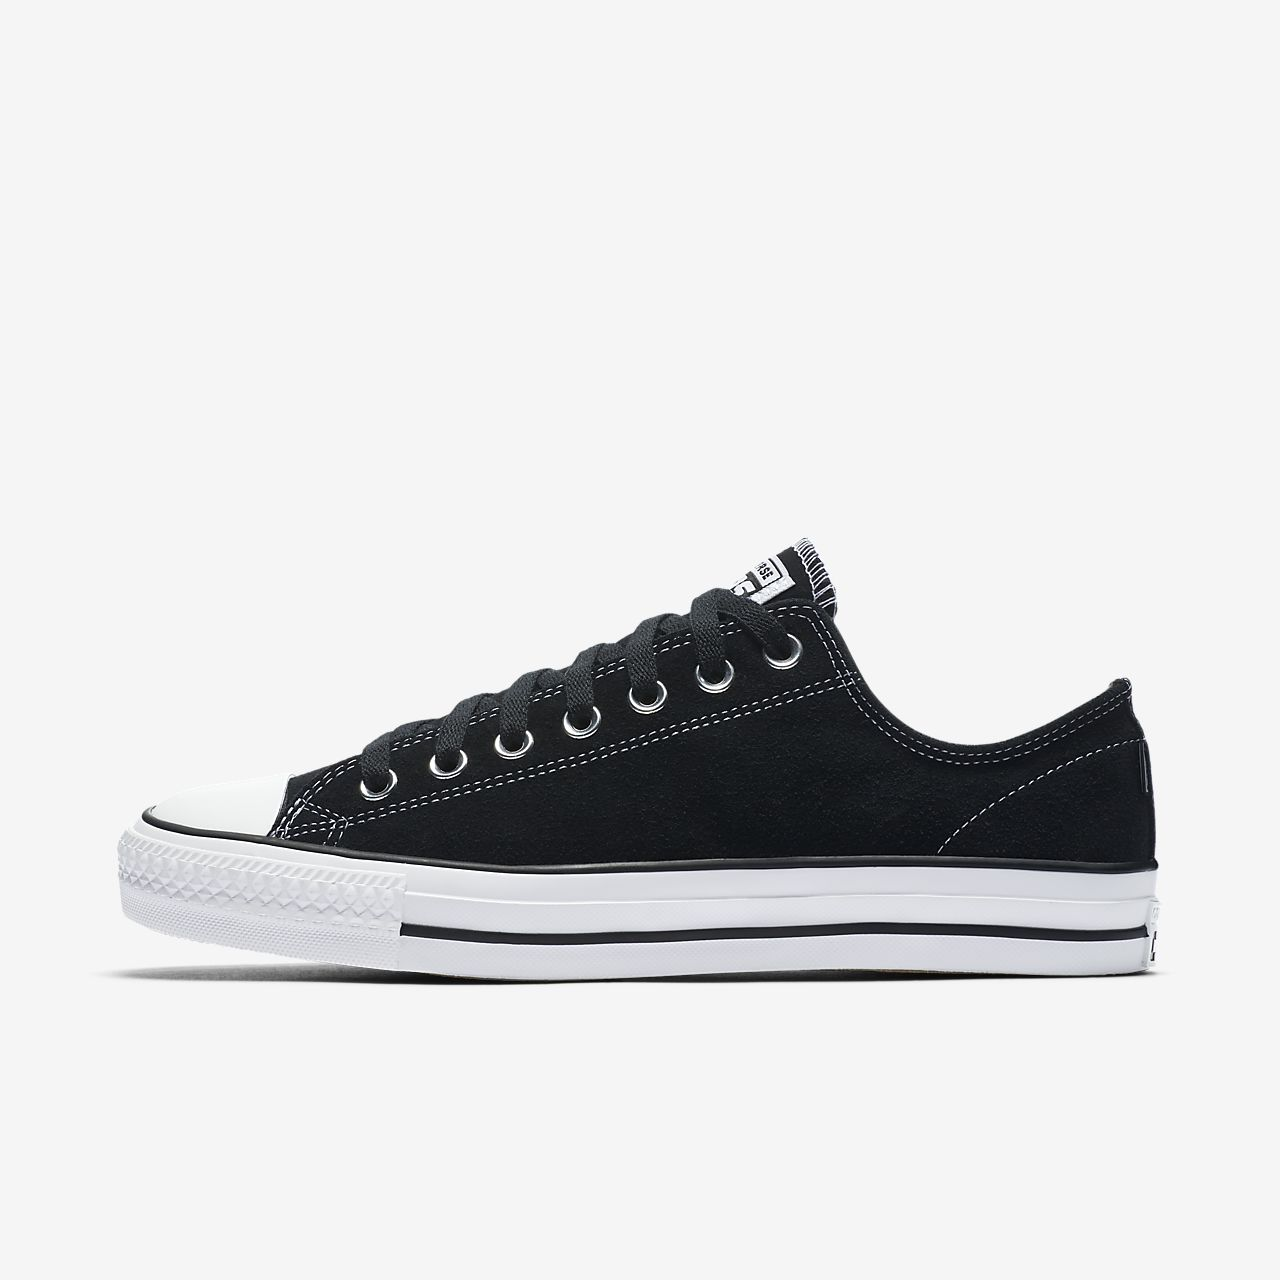 Converse Chuck Taylor All Star Pro Core Suede High Top Unisex Shoe